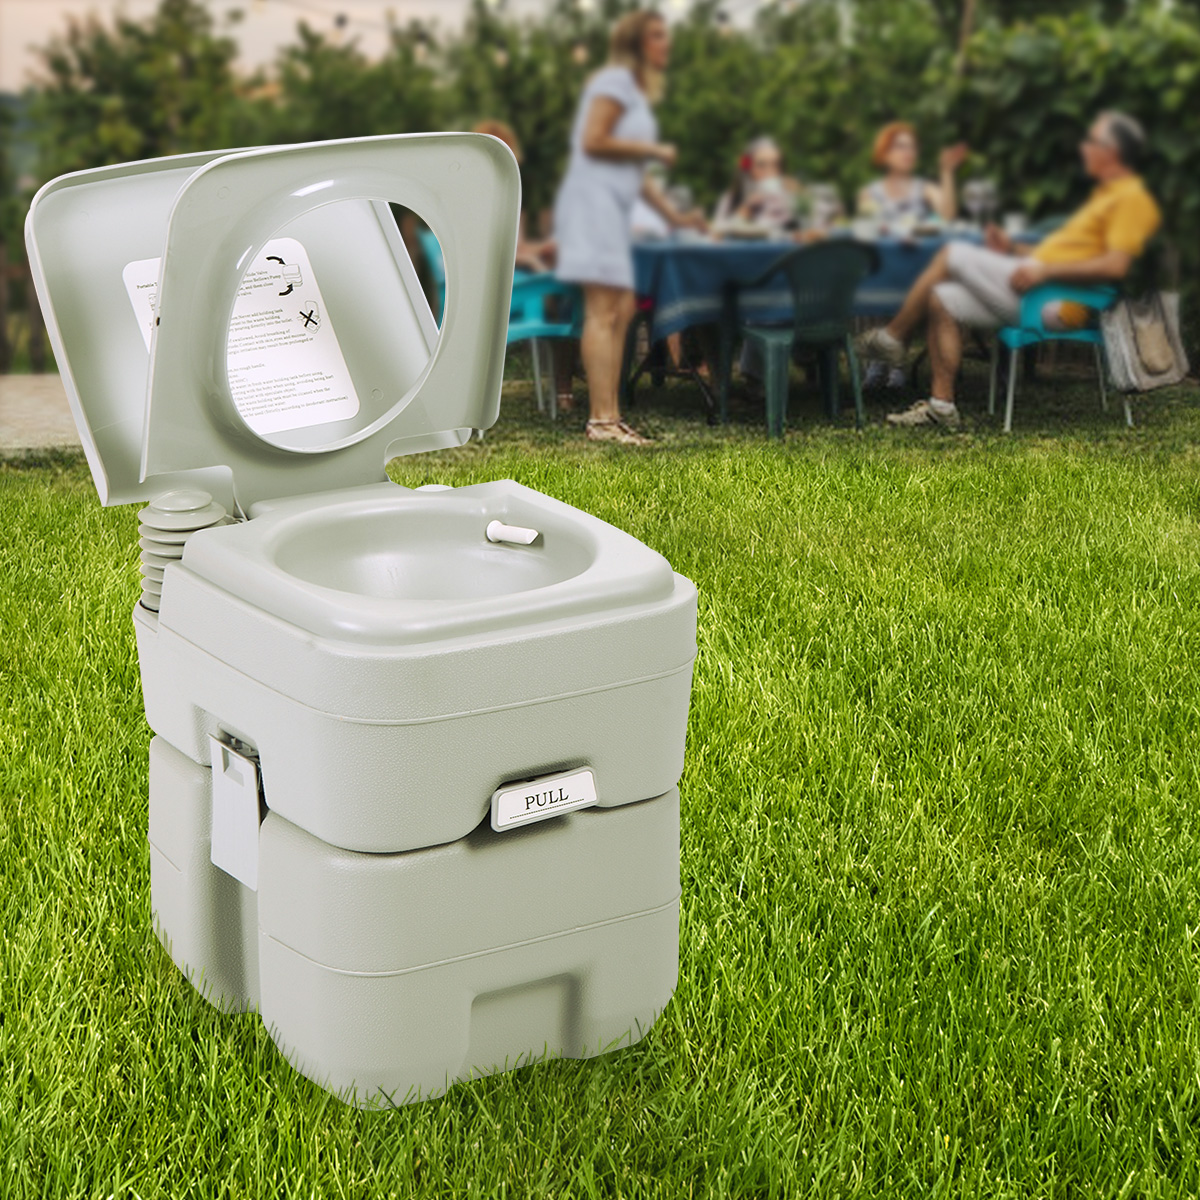 Details about  /Aftermokit Portable Toilet With 5.3 Gallon Waste Tank  3.2 Gallon Water Flush T